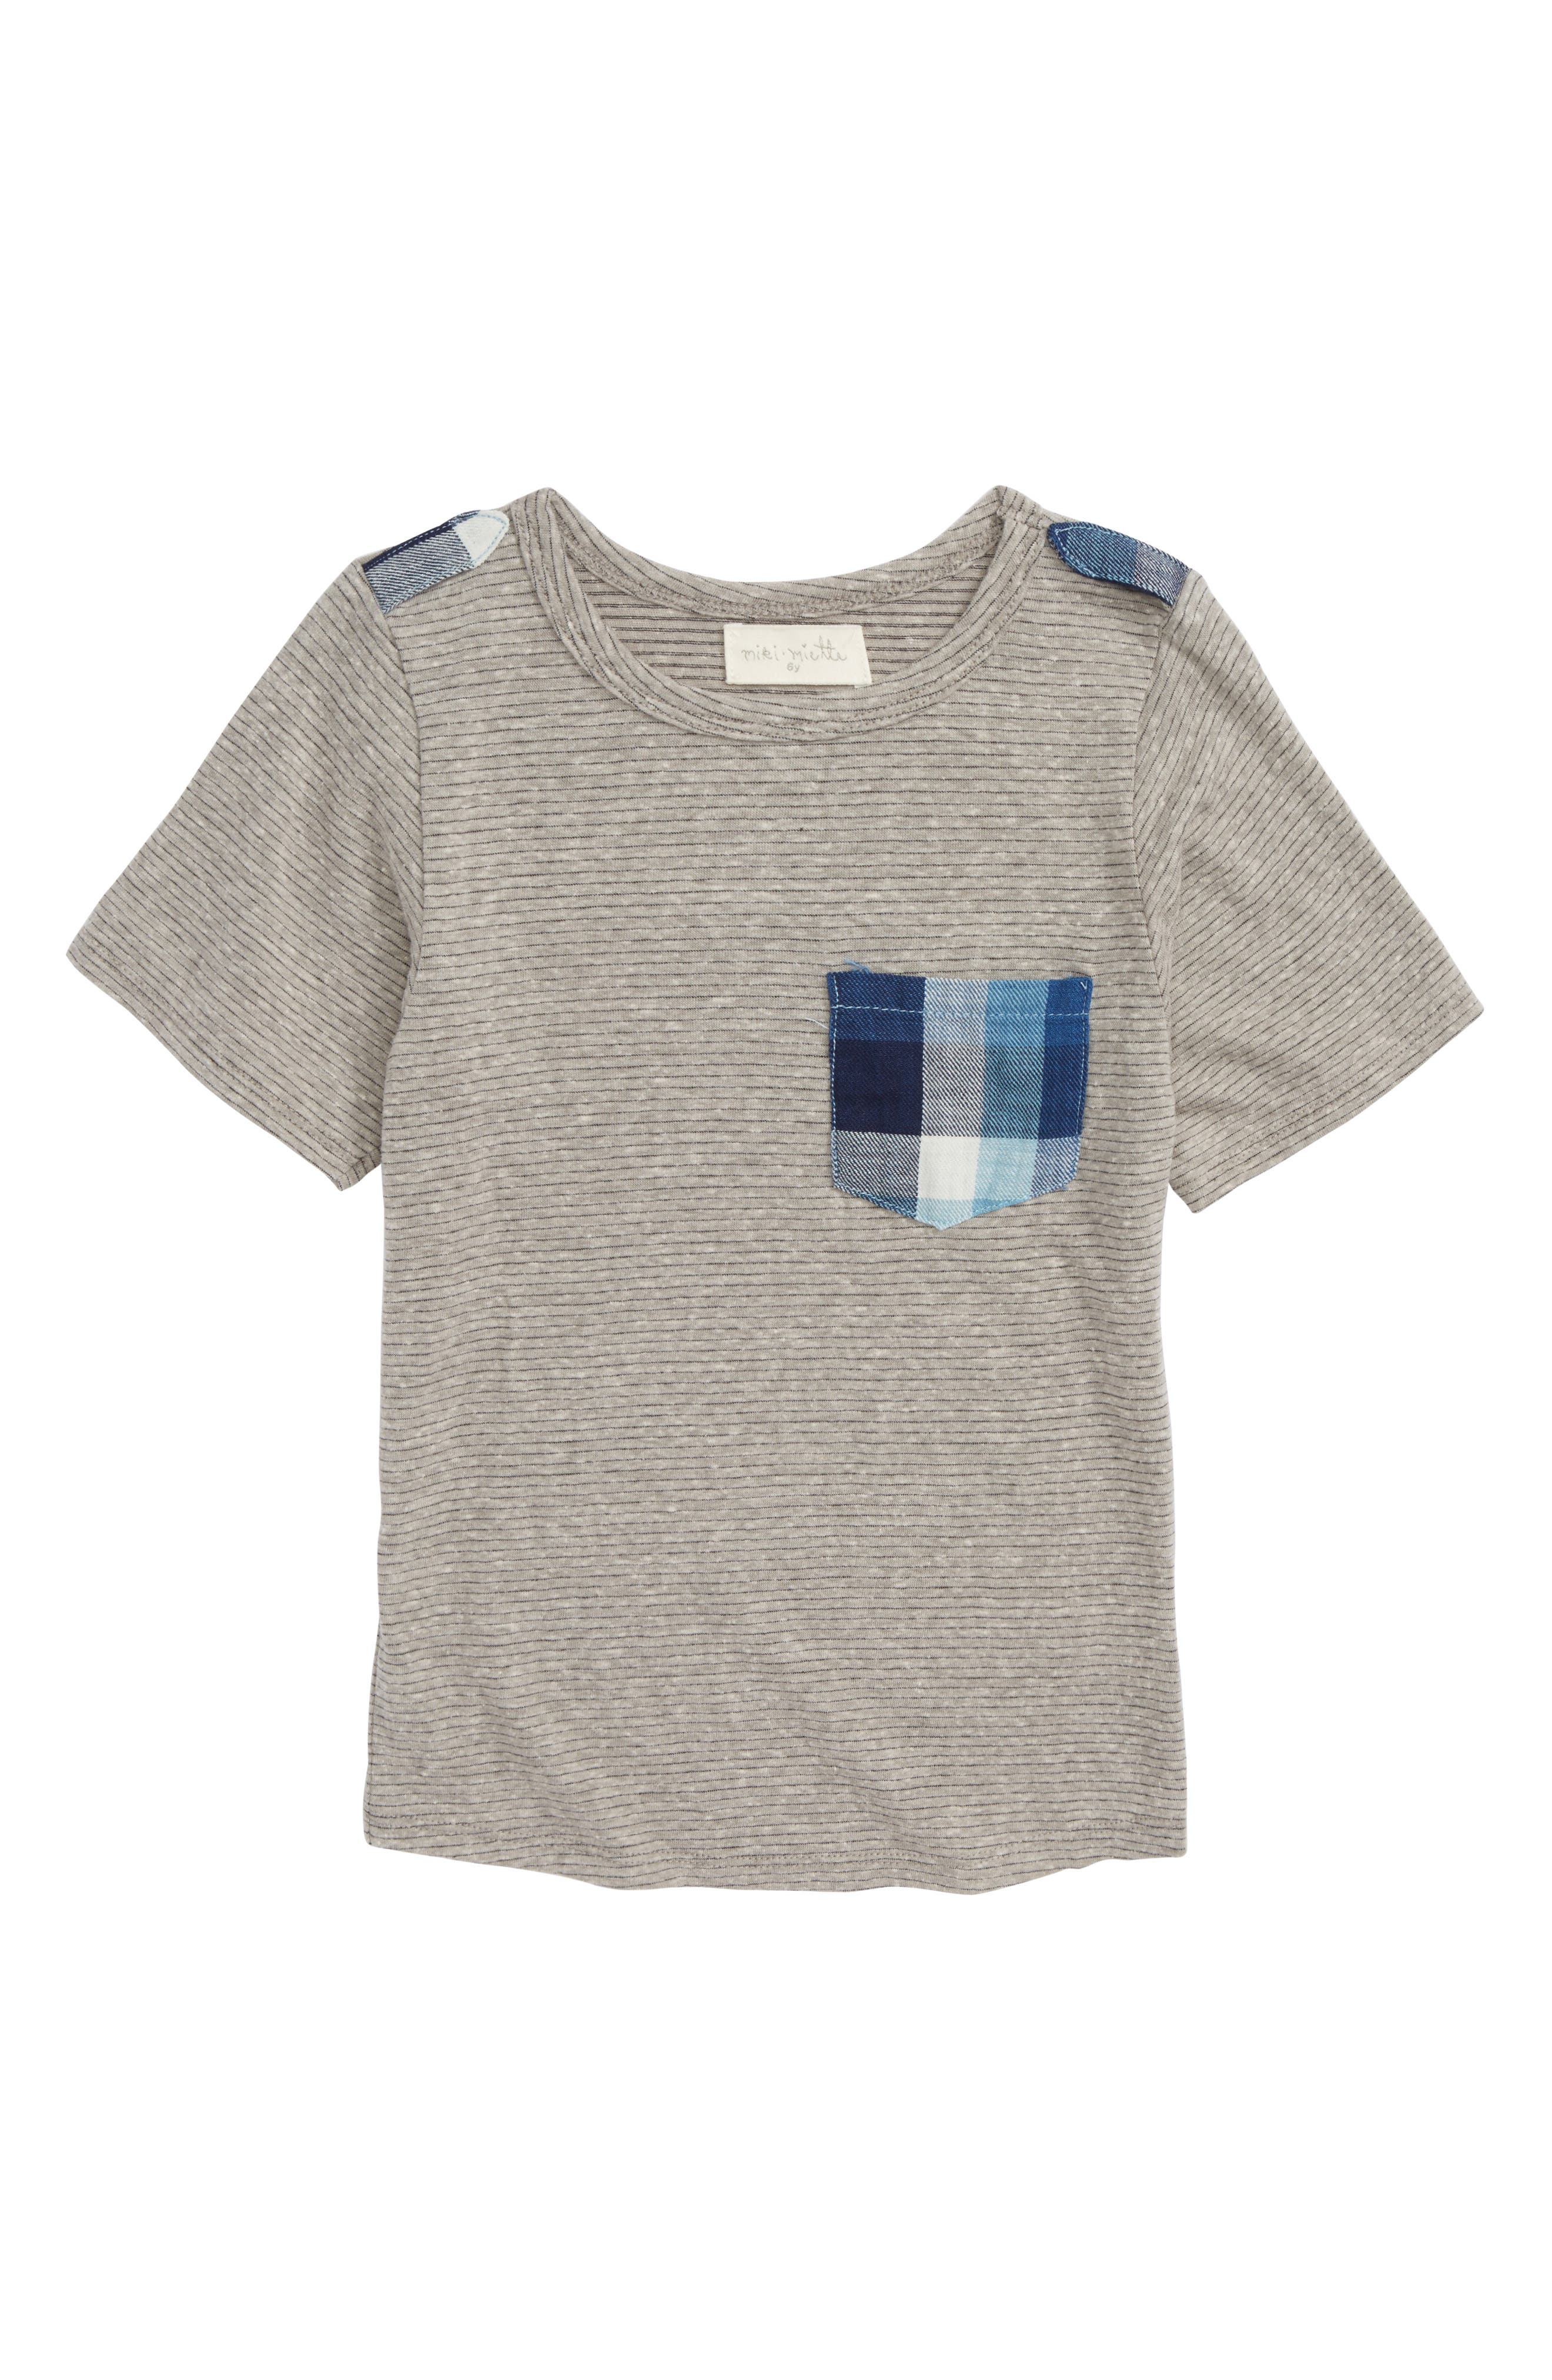 Ranger Pocket T-Shirt,                             Main thumbnail 1, color,                             020